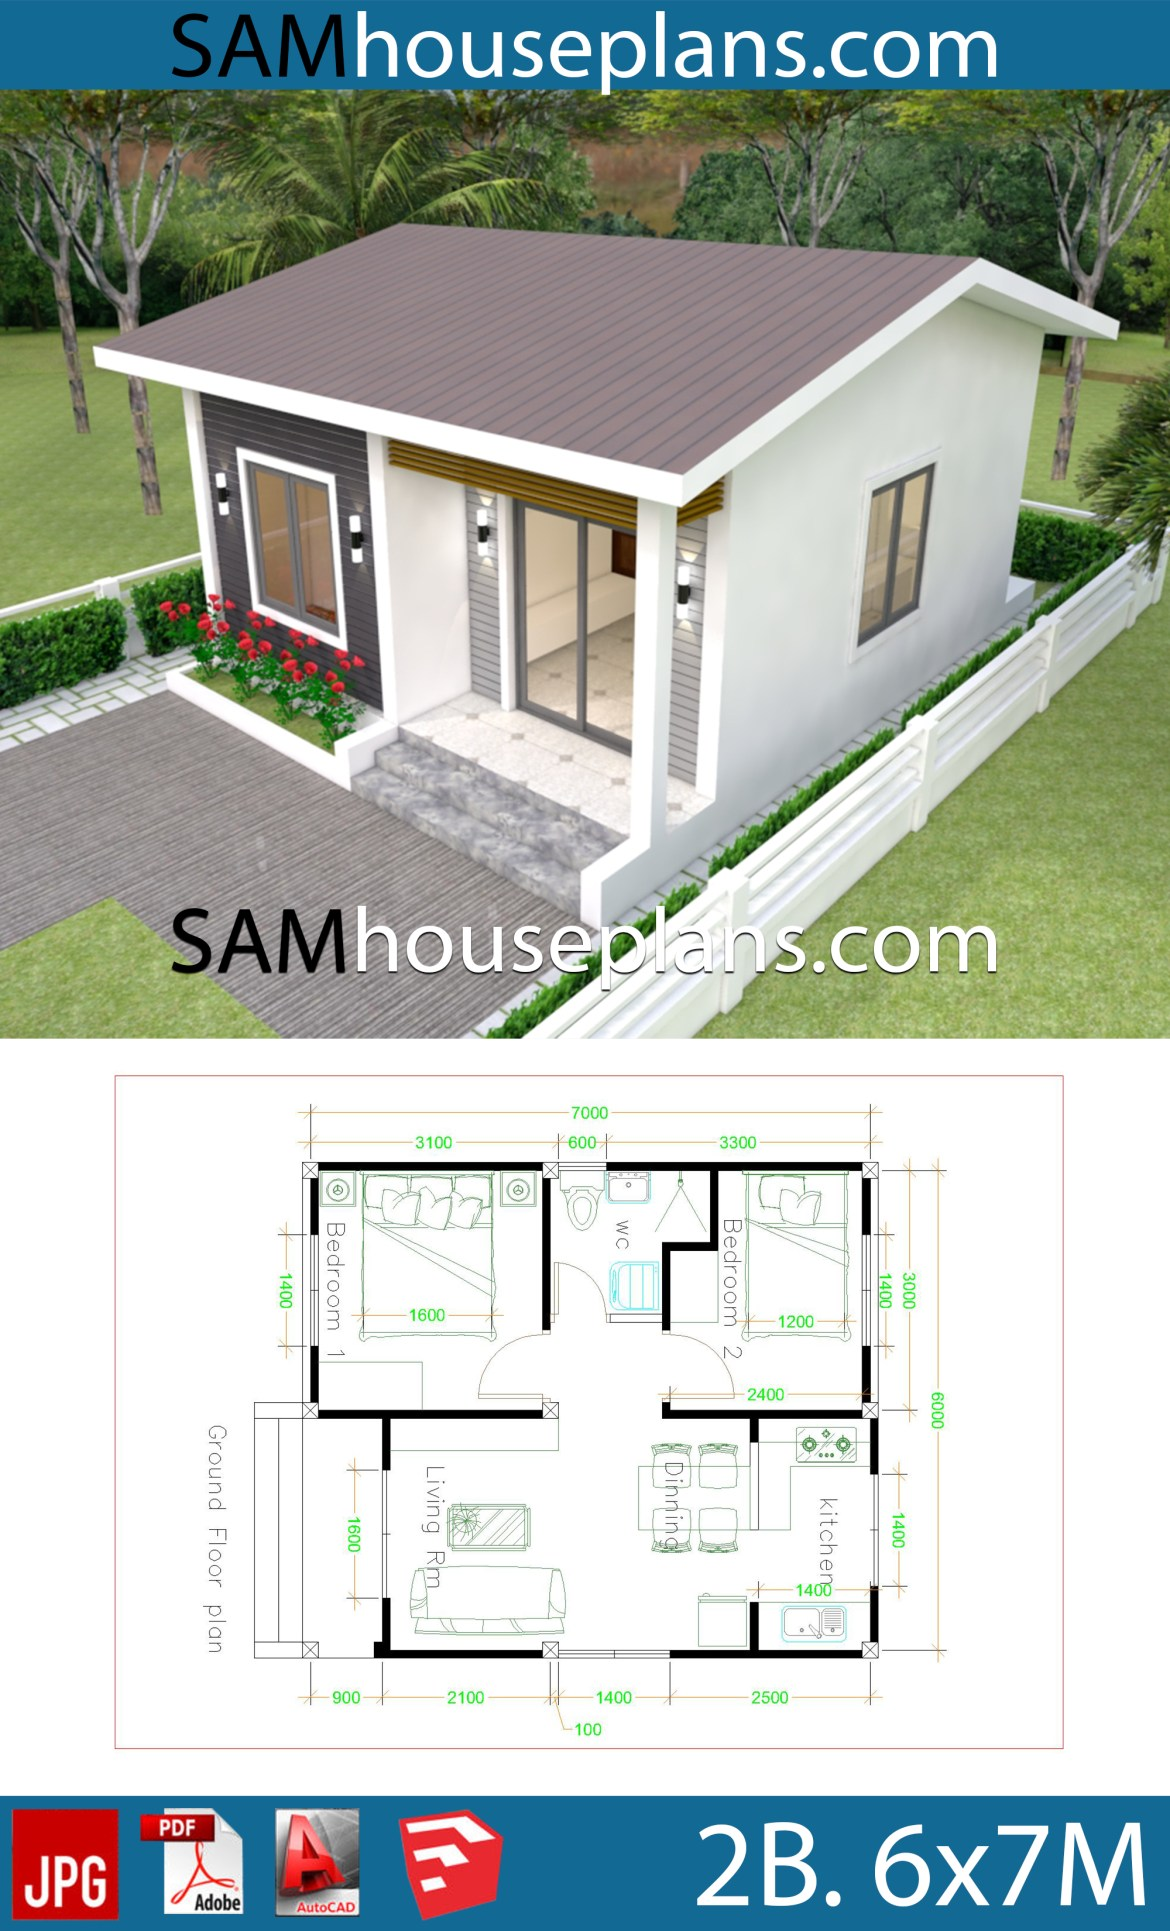 House Plans 6x7m with 2 bedrooms Full Plans - SamPhoas Plan